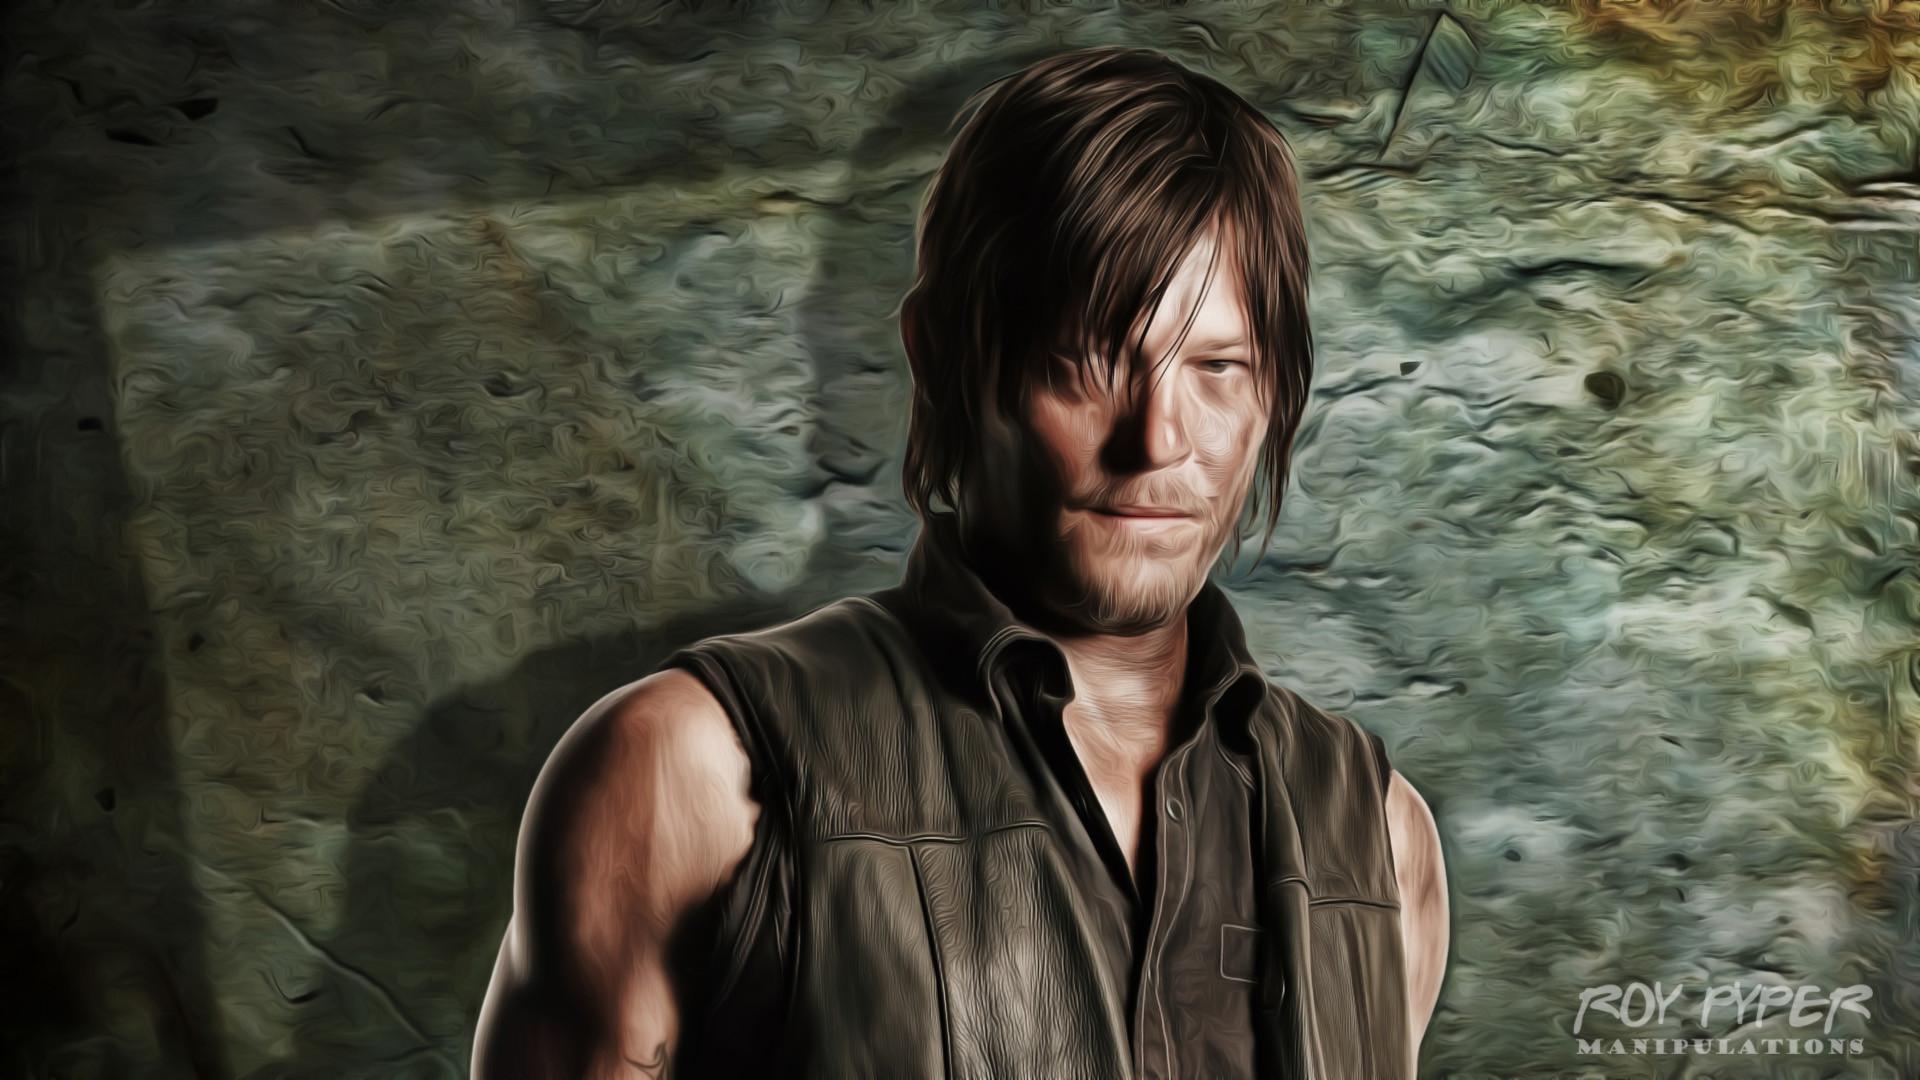 Walking Dead Wallpaper For Android: Daryl Dixon Wallpaper ·① Download Free Awesome HD